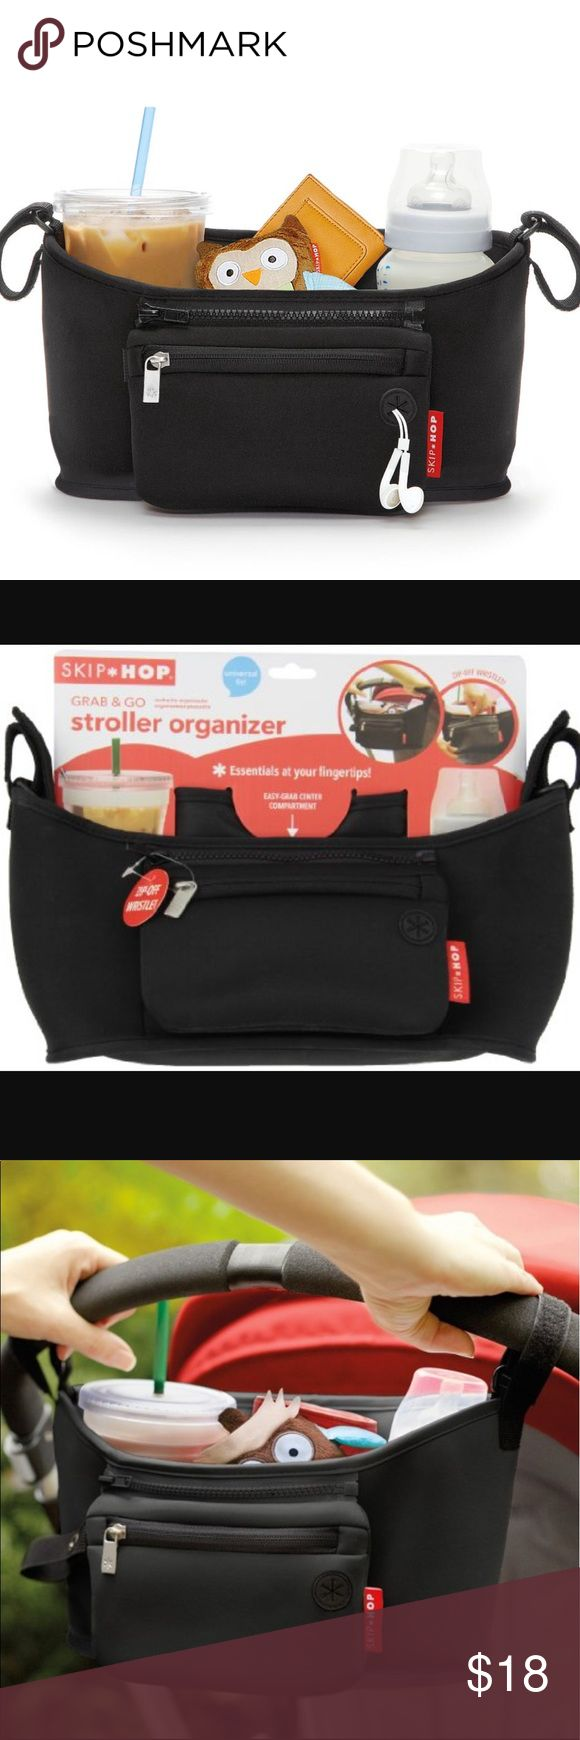 Skip Hop Stroll & Go Stroller Organizer Brand new never been used stroller organizer. Is Pete t for the moms who don't like to haul around a huge baby bag with them. This is all you need! Has as much storage space and compartments as a bag! Just clip on the stroller and you're ready to go! Don't hesitate to ask any questions! Skip Hop Accessories